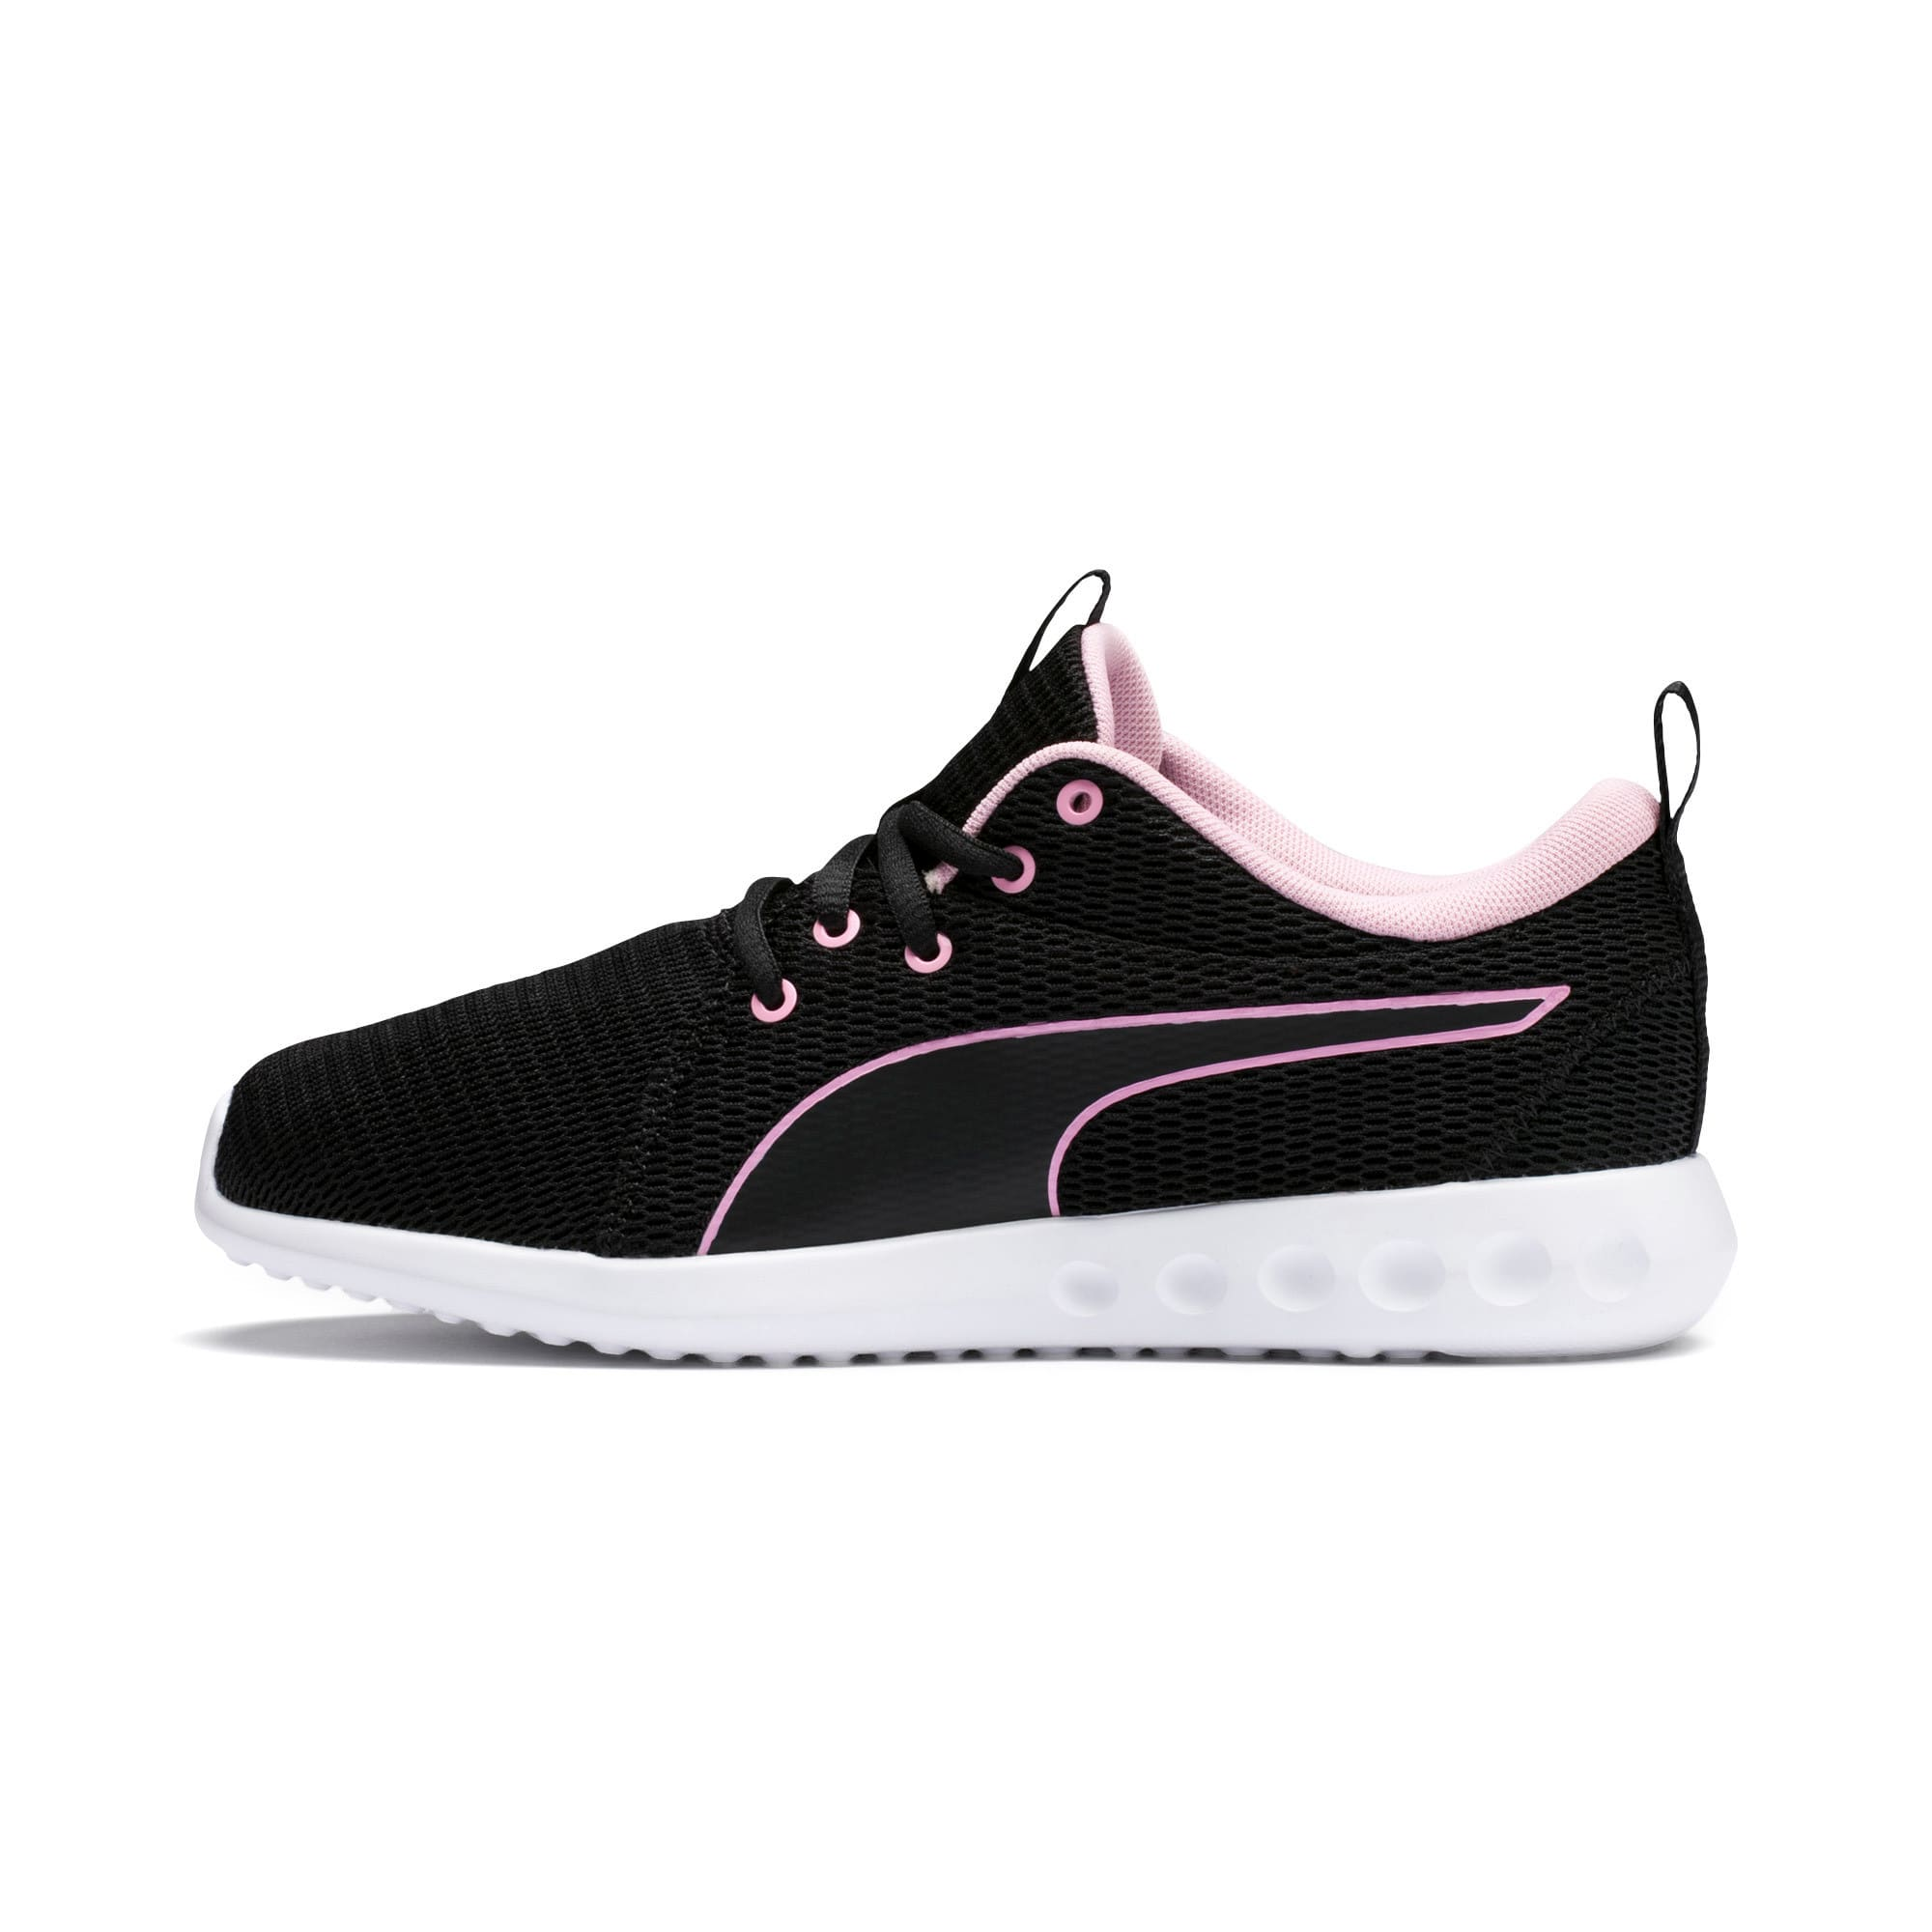 Thumbnail 1 of Carson 2 New Core Women's Training Shoes, Puma Black-Pale Pink, medium